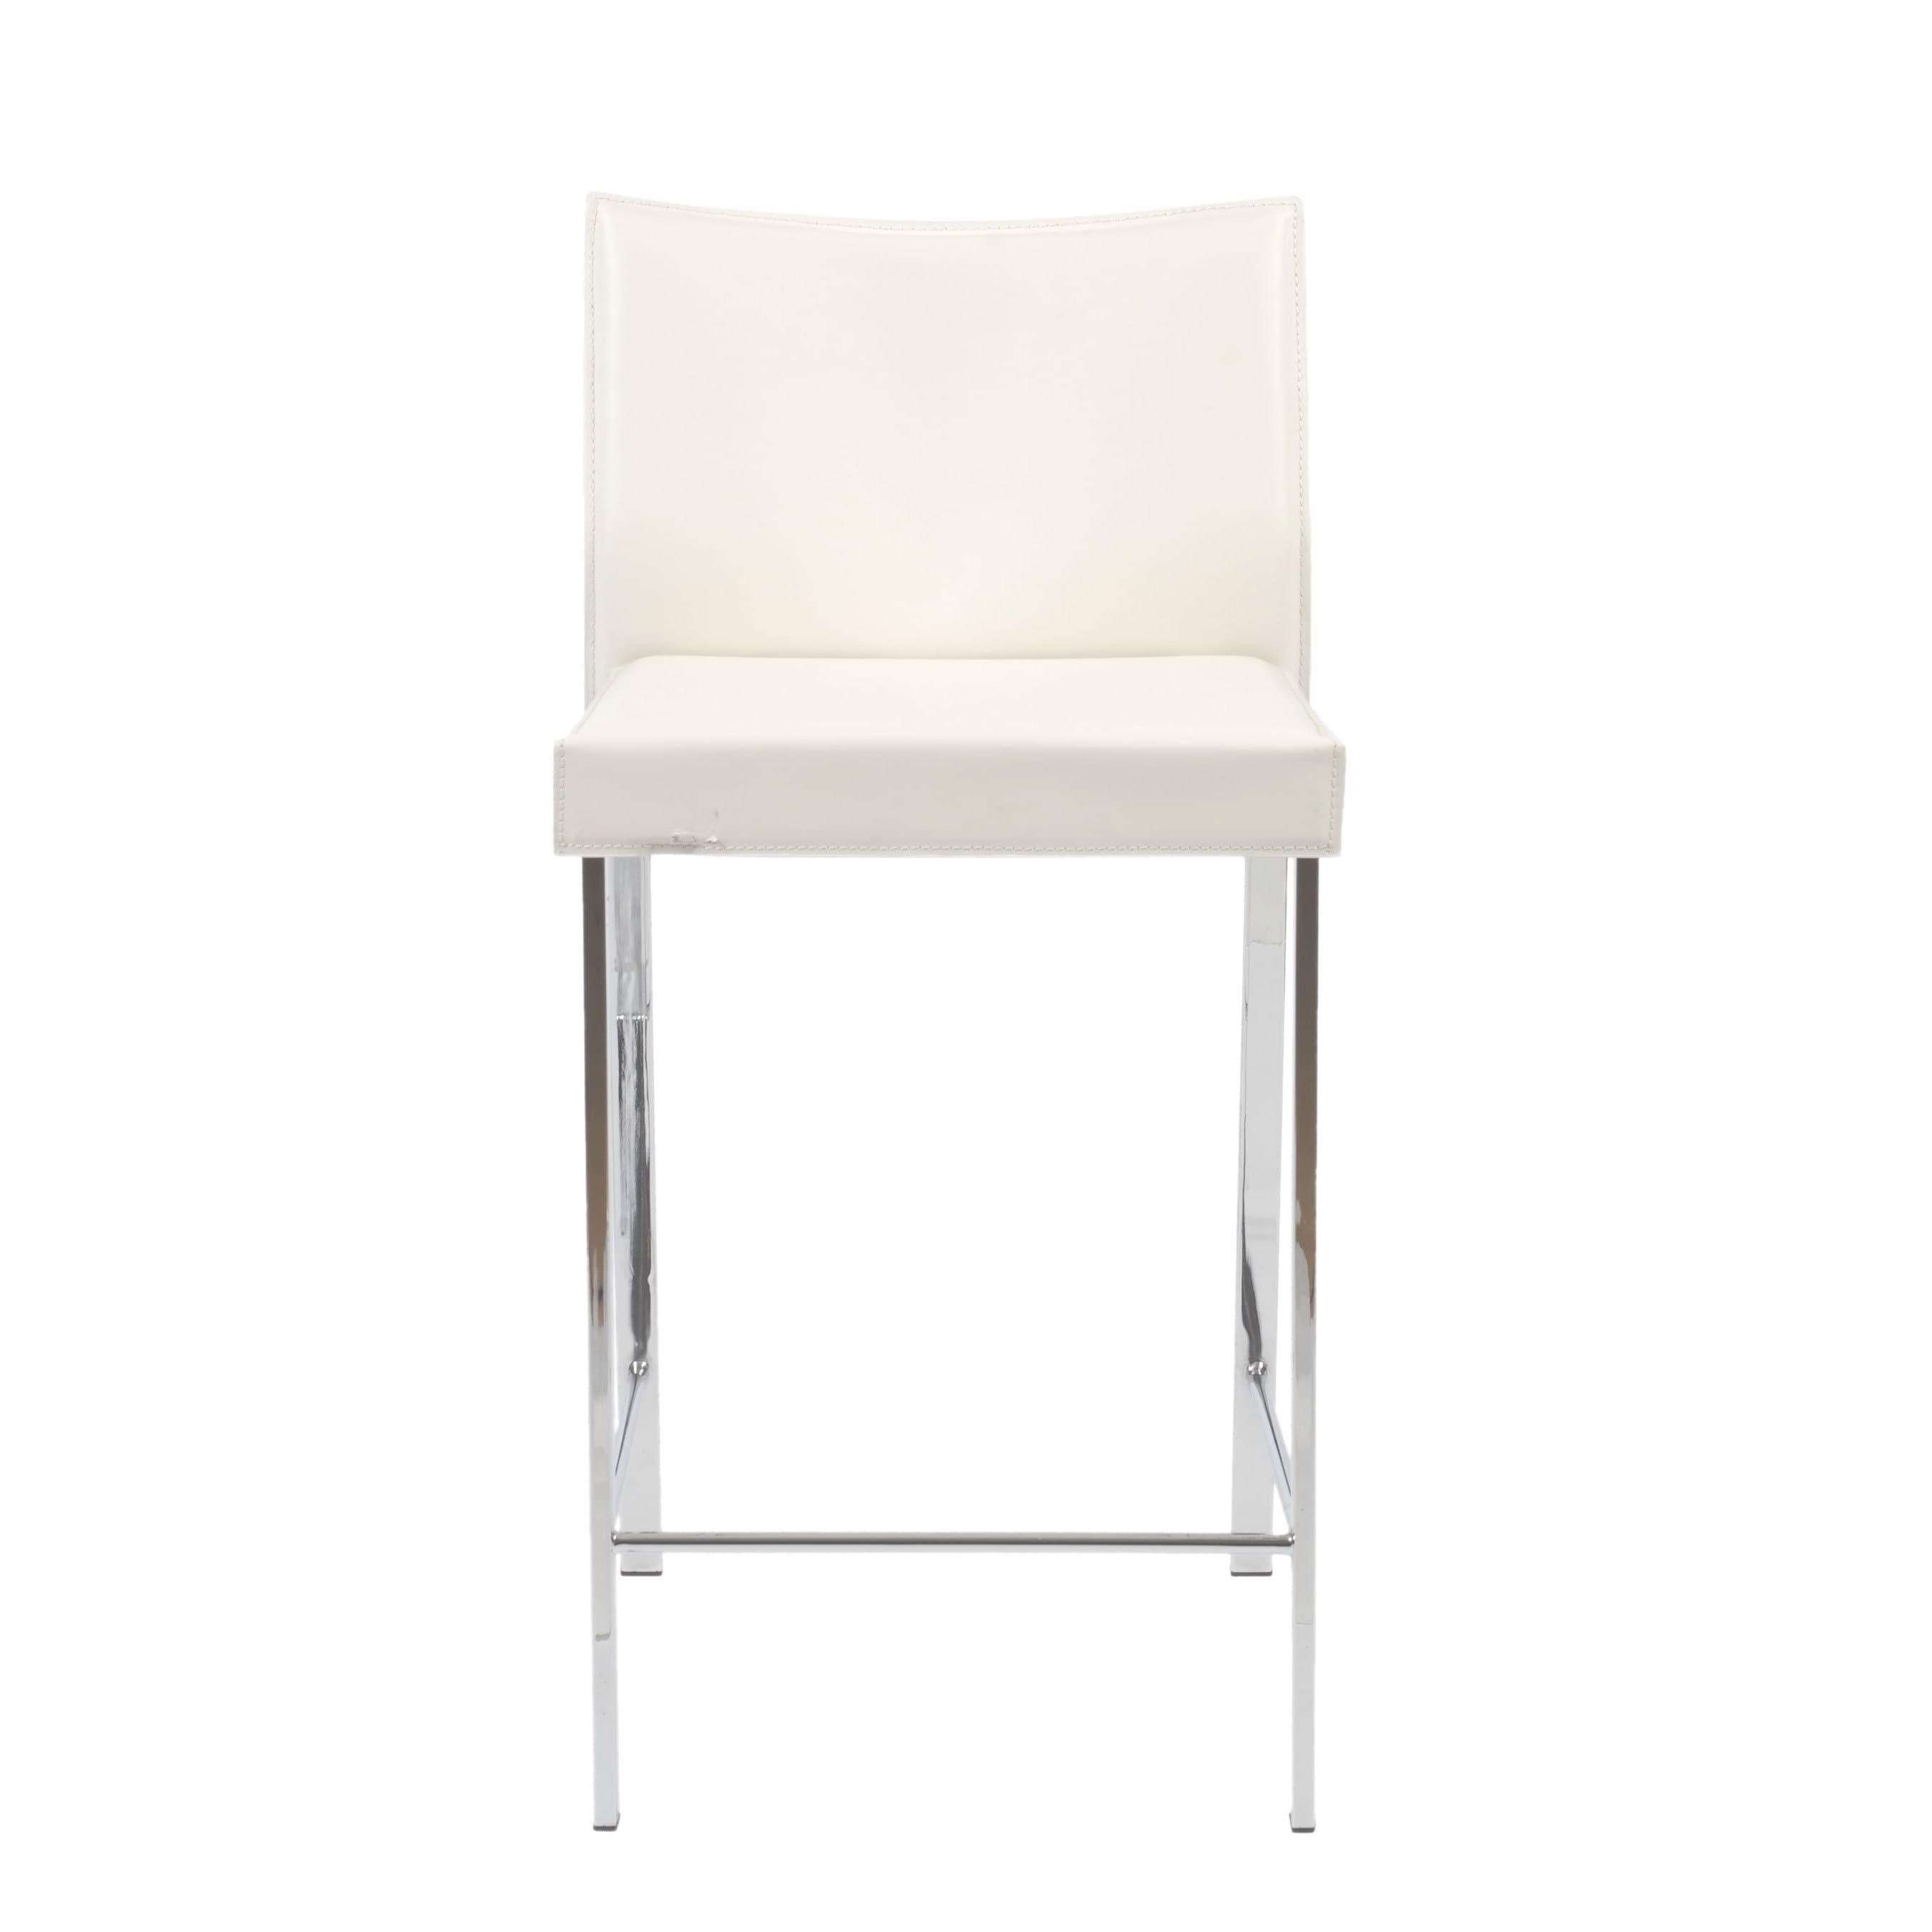 Riley 24 Inch White Leather Chrome Counter Stool Set Of 2 Free Shipping Today 10670326